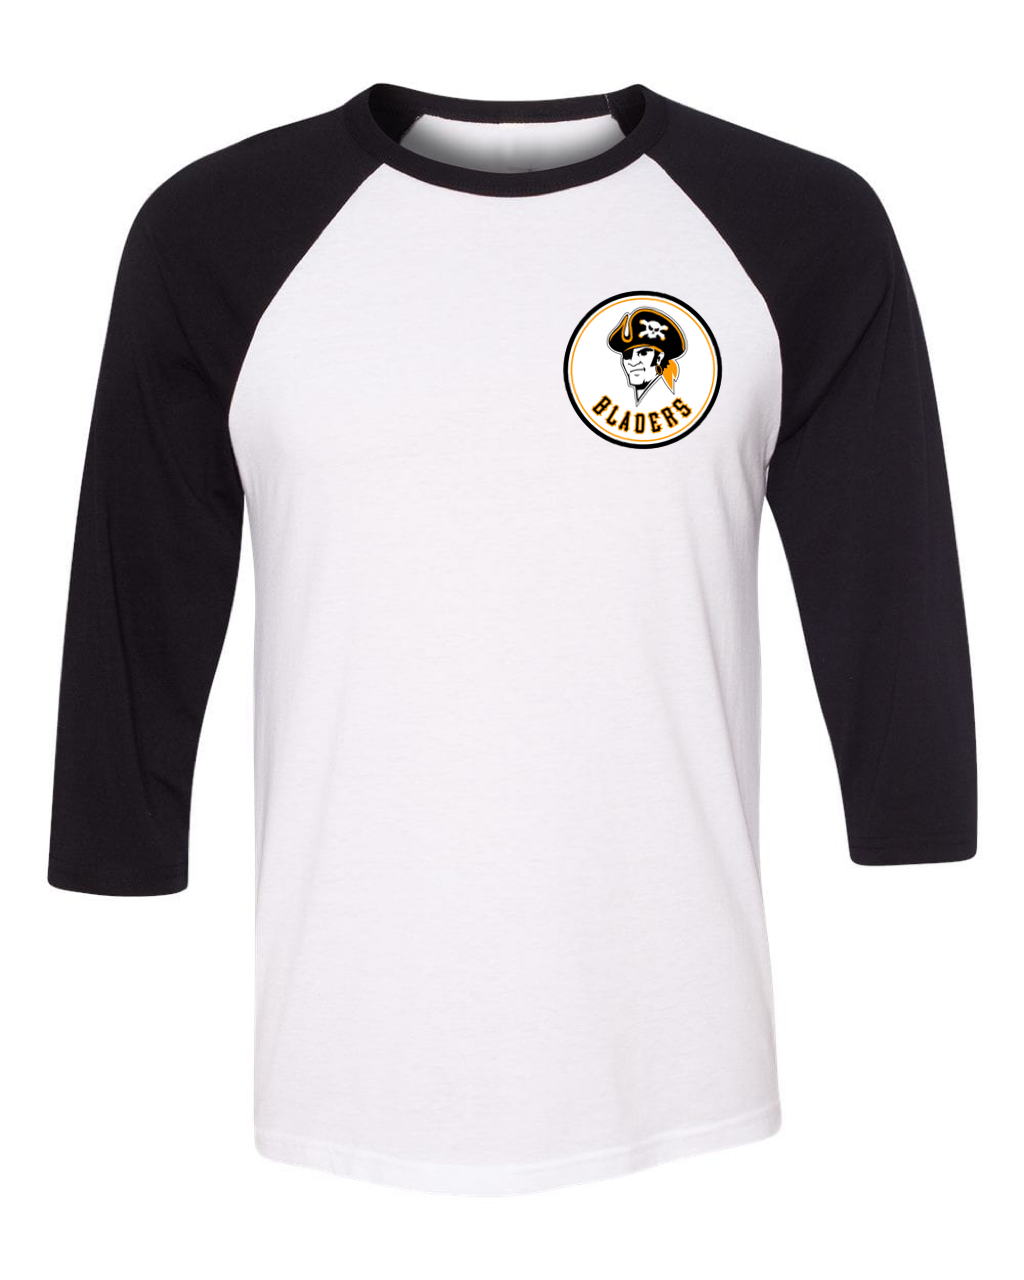 Image of Pirate Bladers Baseball Tee - PRE-ORDER